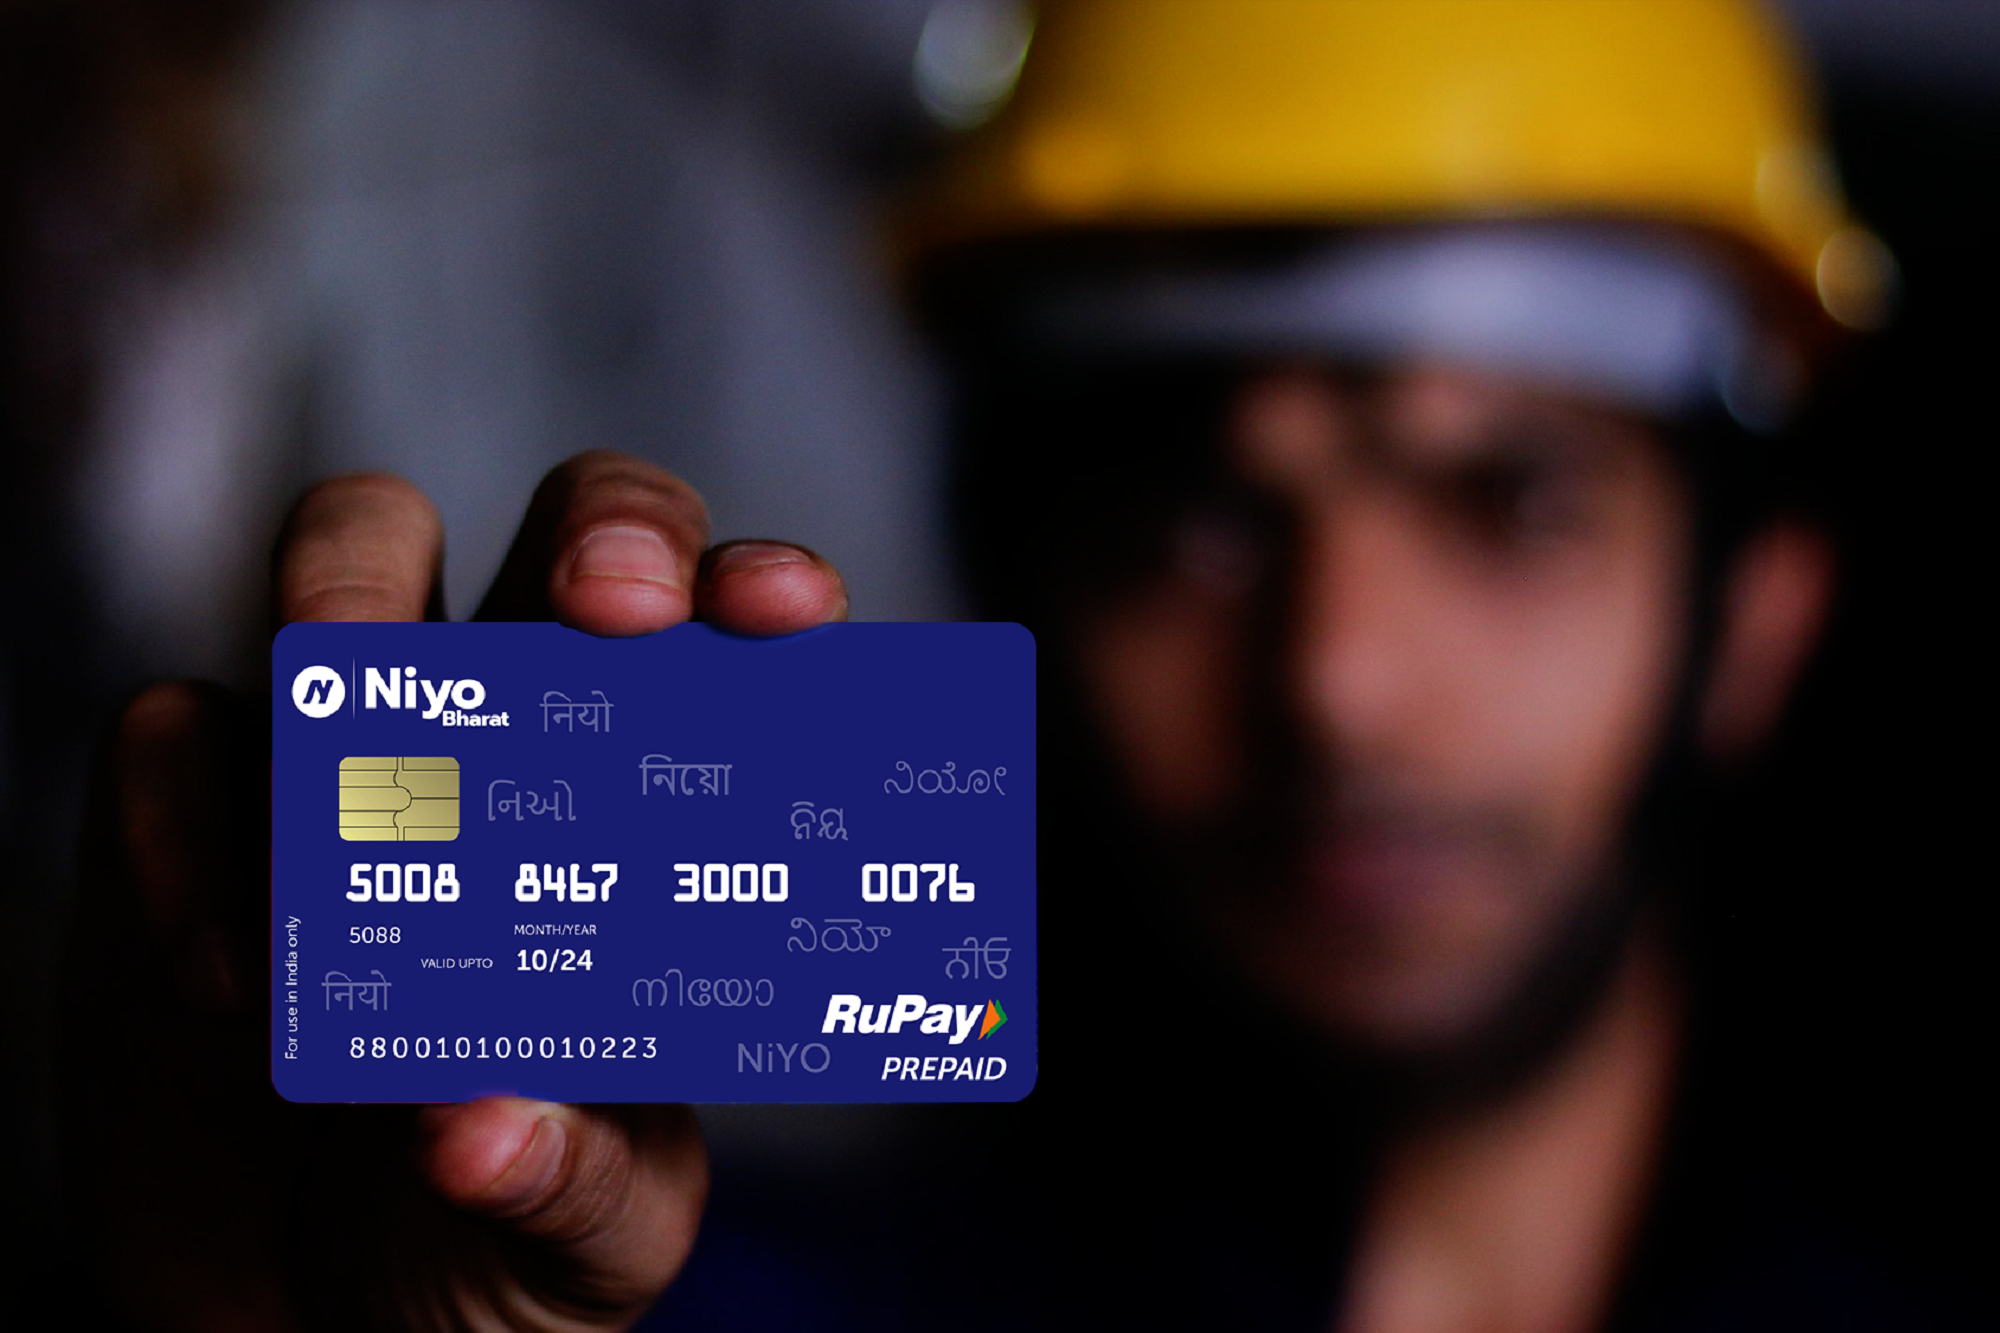 Digital Banking Start-Up Partners With NPCI, Plans To Serve 5 Mln Blue Collar Workers By 2022